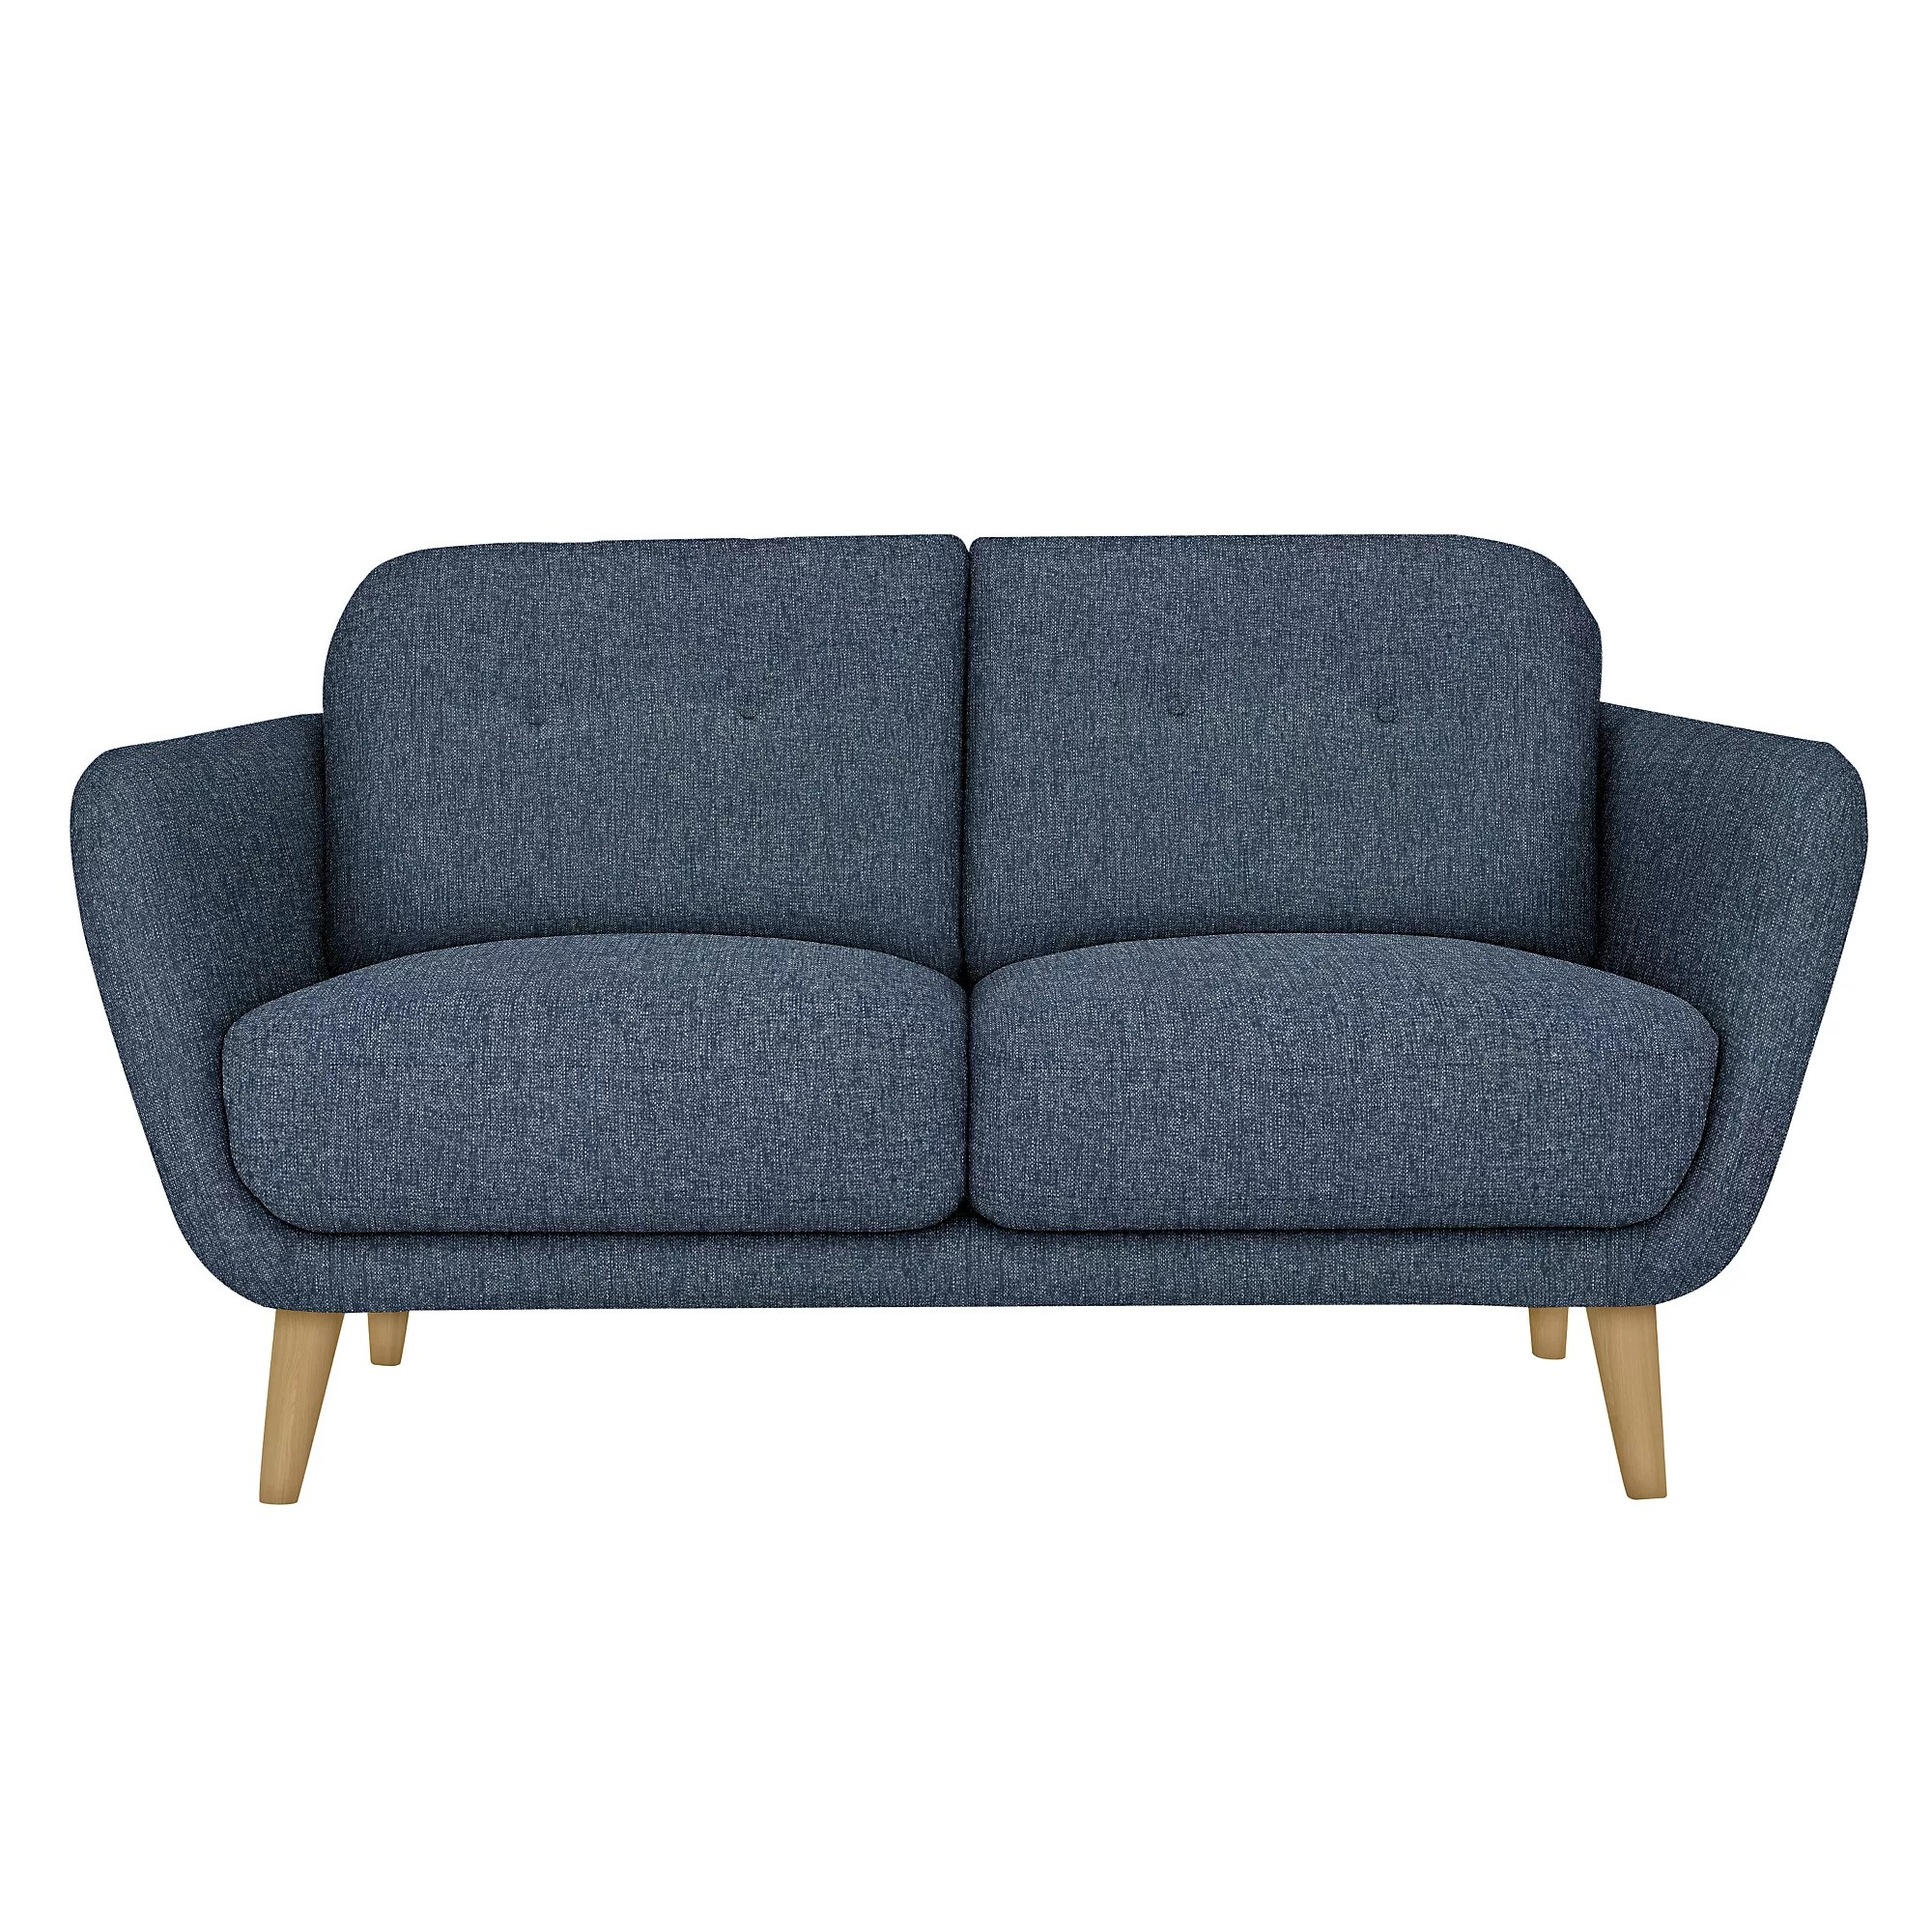 sofa warehouse clearance uk makers in bangalore furniture home offers john lewis partners 20 off sofas armchairs